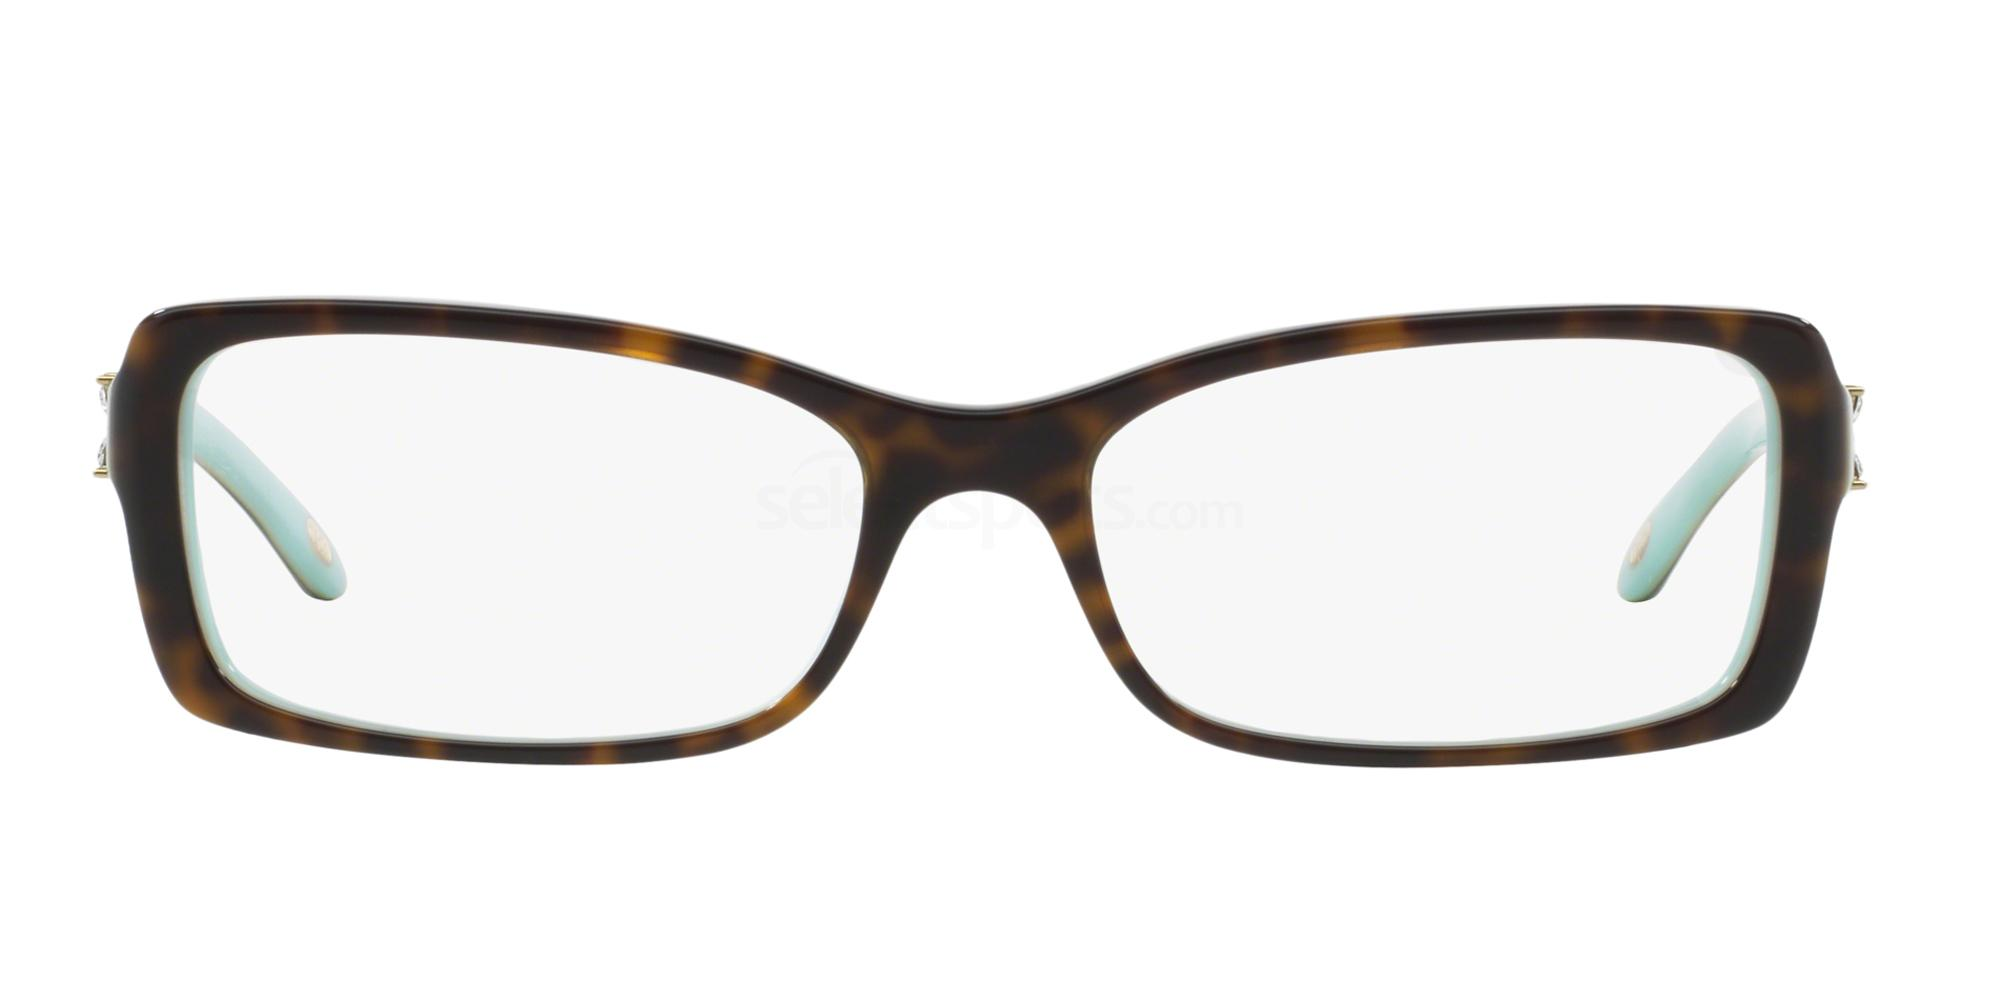 Tiffany & Co. TF2091B glasses | Free lenses | SelectSpecs